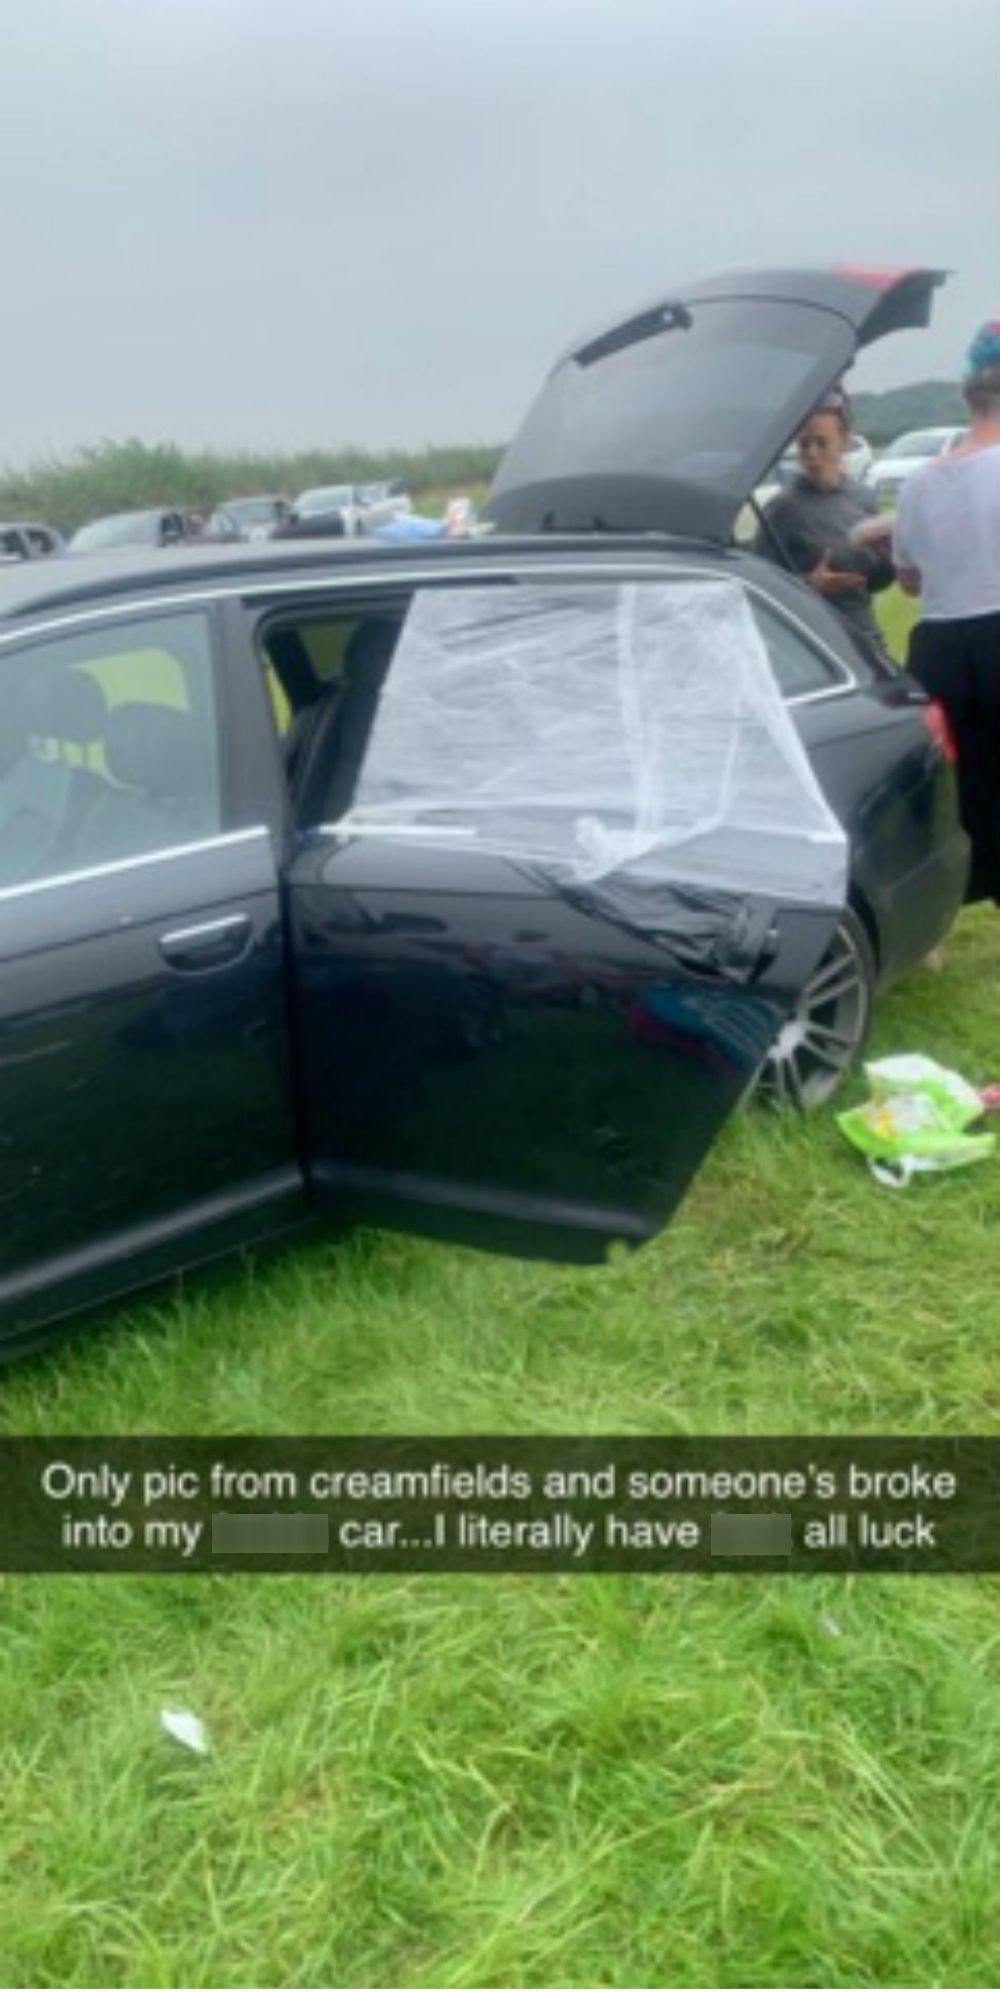 Cars at Creamfields were vandalised and broken into in the car park